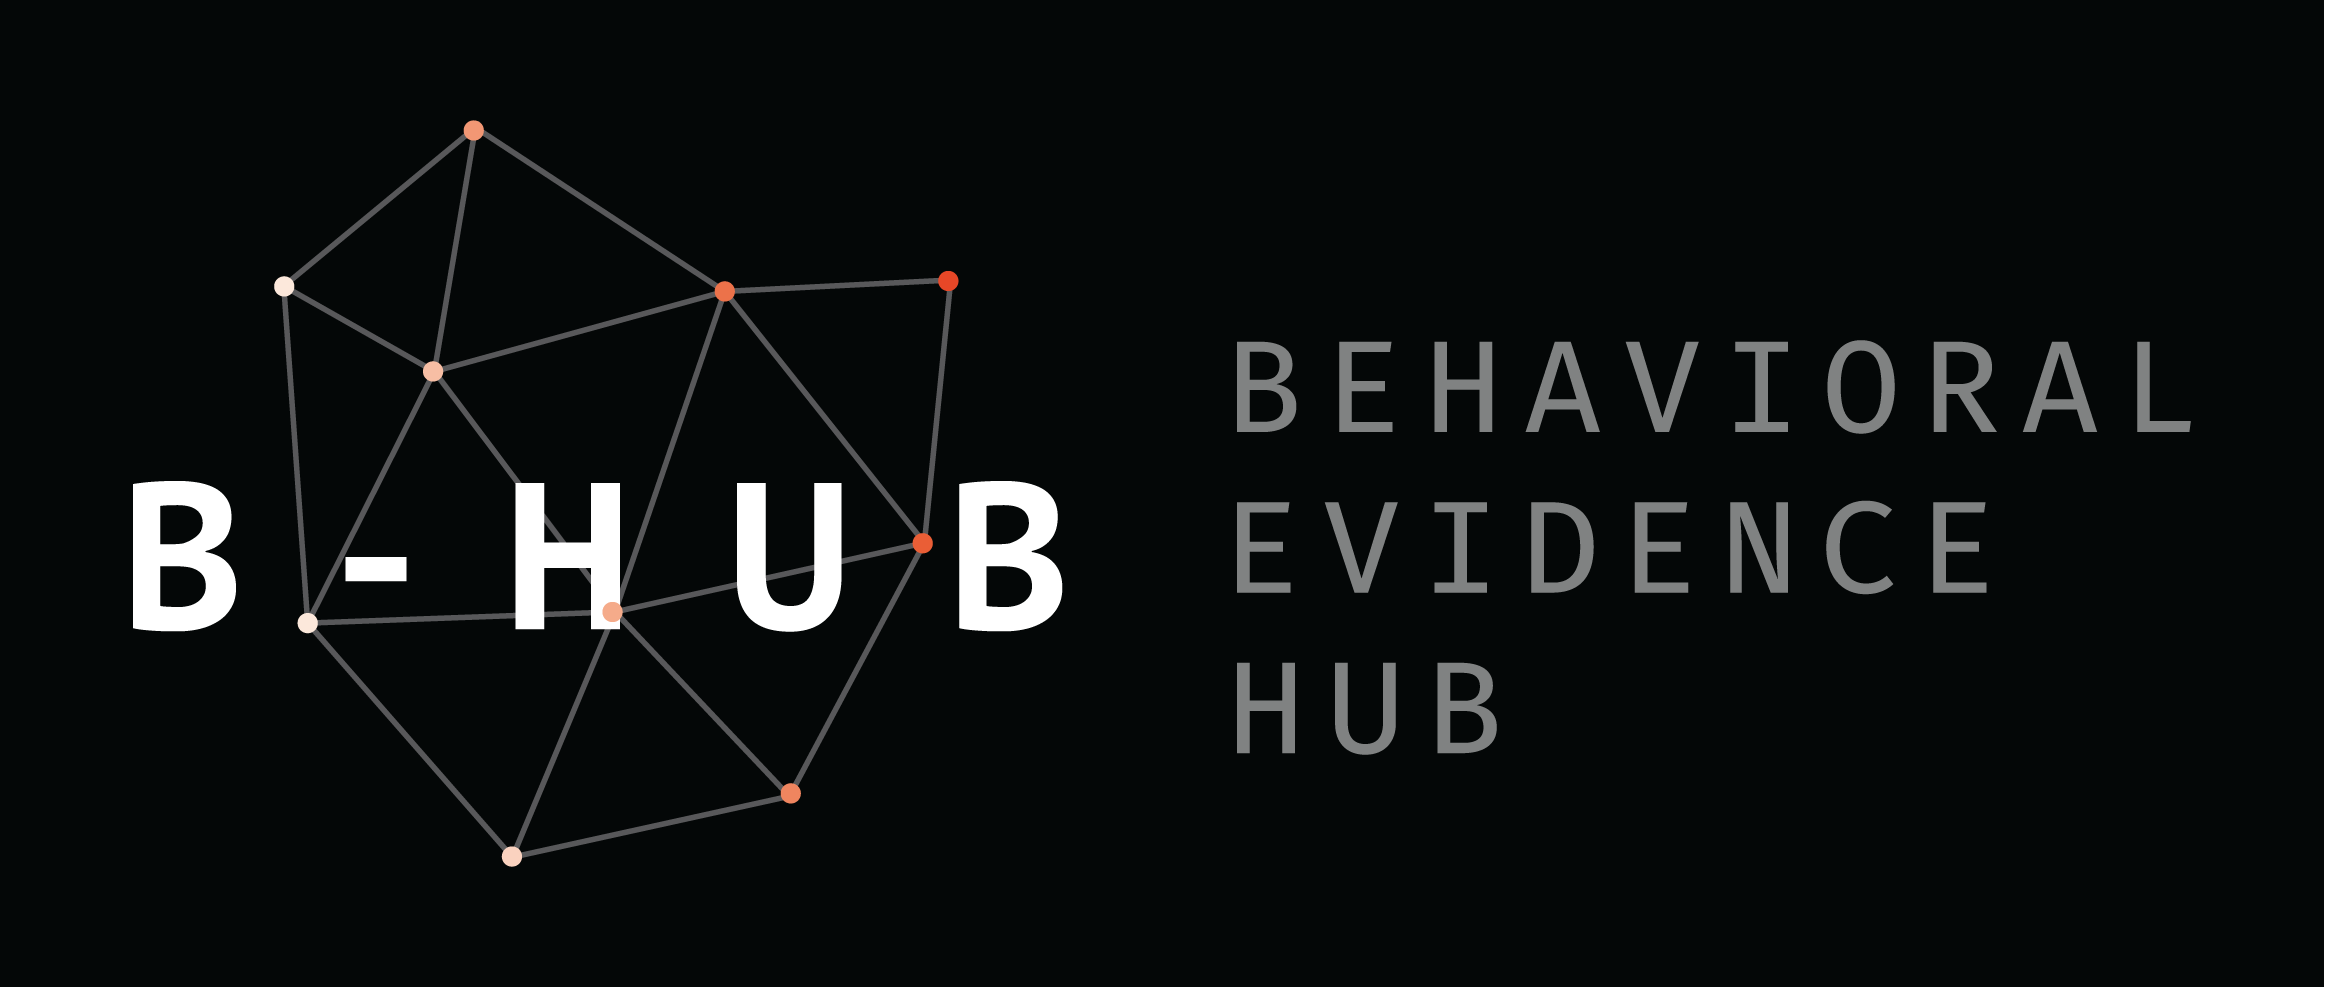 bhub-logo-darkbackground-solid copy.png